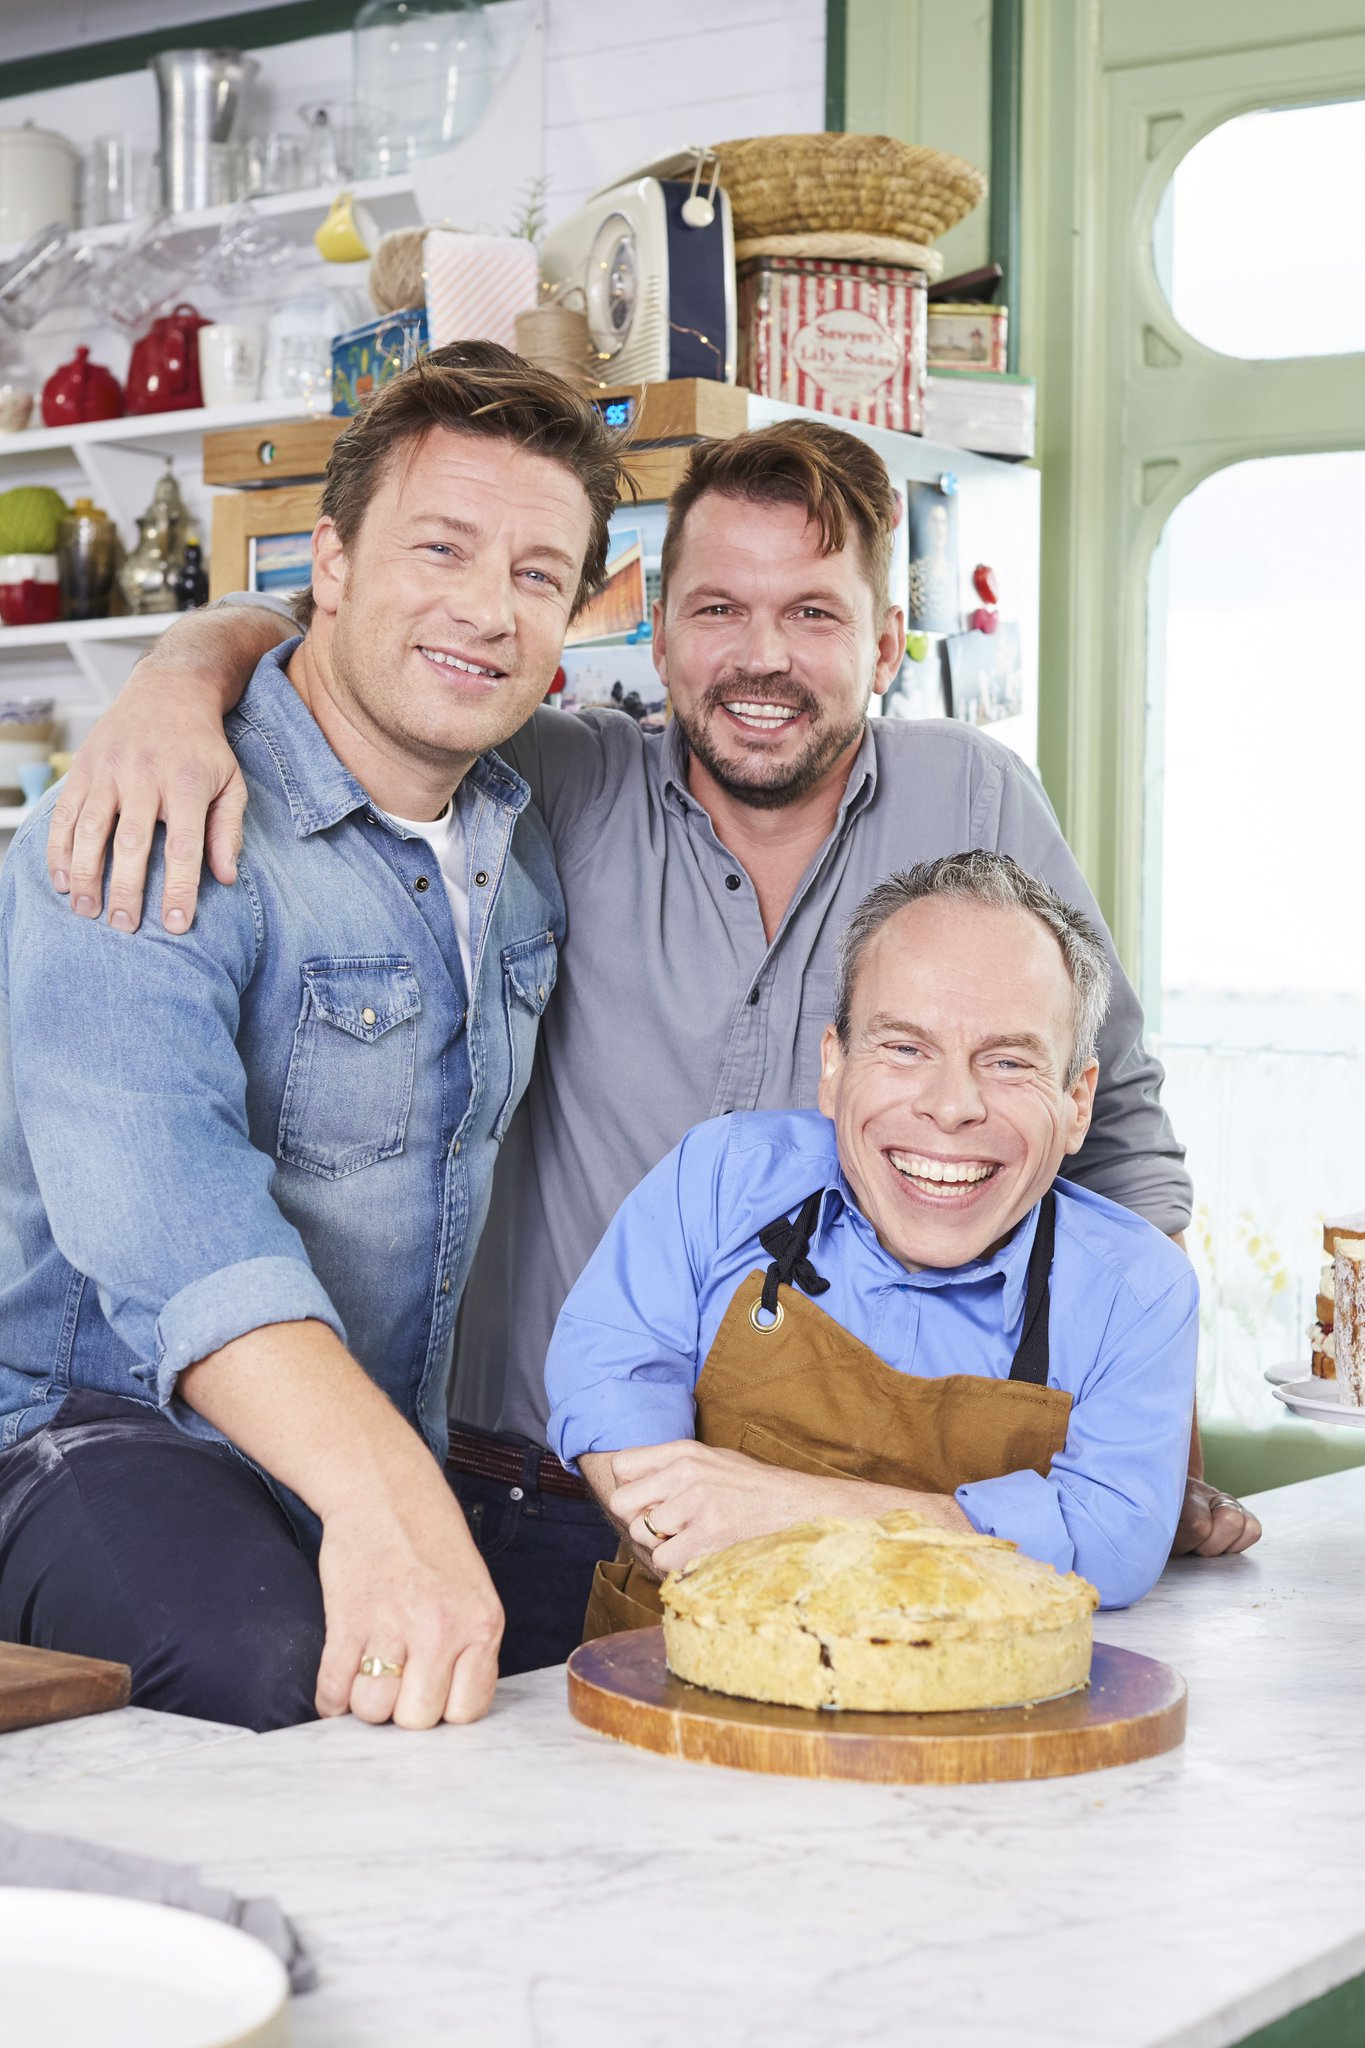 .@WarwickADavis and the order of the beef and Stilton pie! 1 HOUR TO GO until #FridayNightFeast, @Channel4. https://t.co/on8jQxfqFT